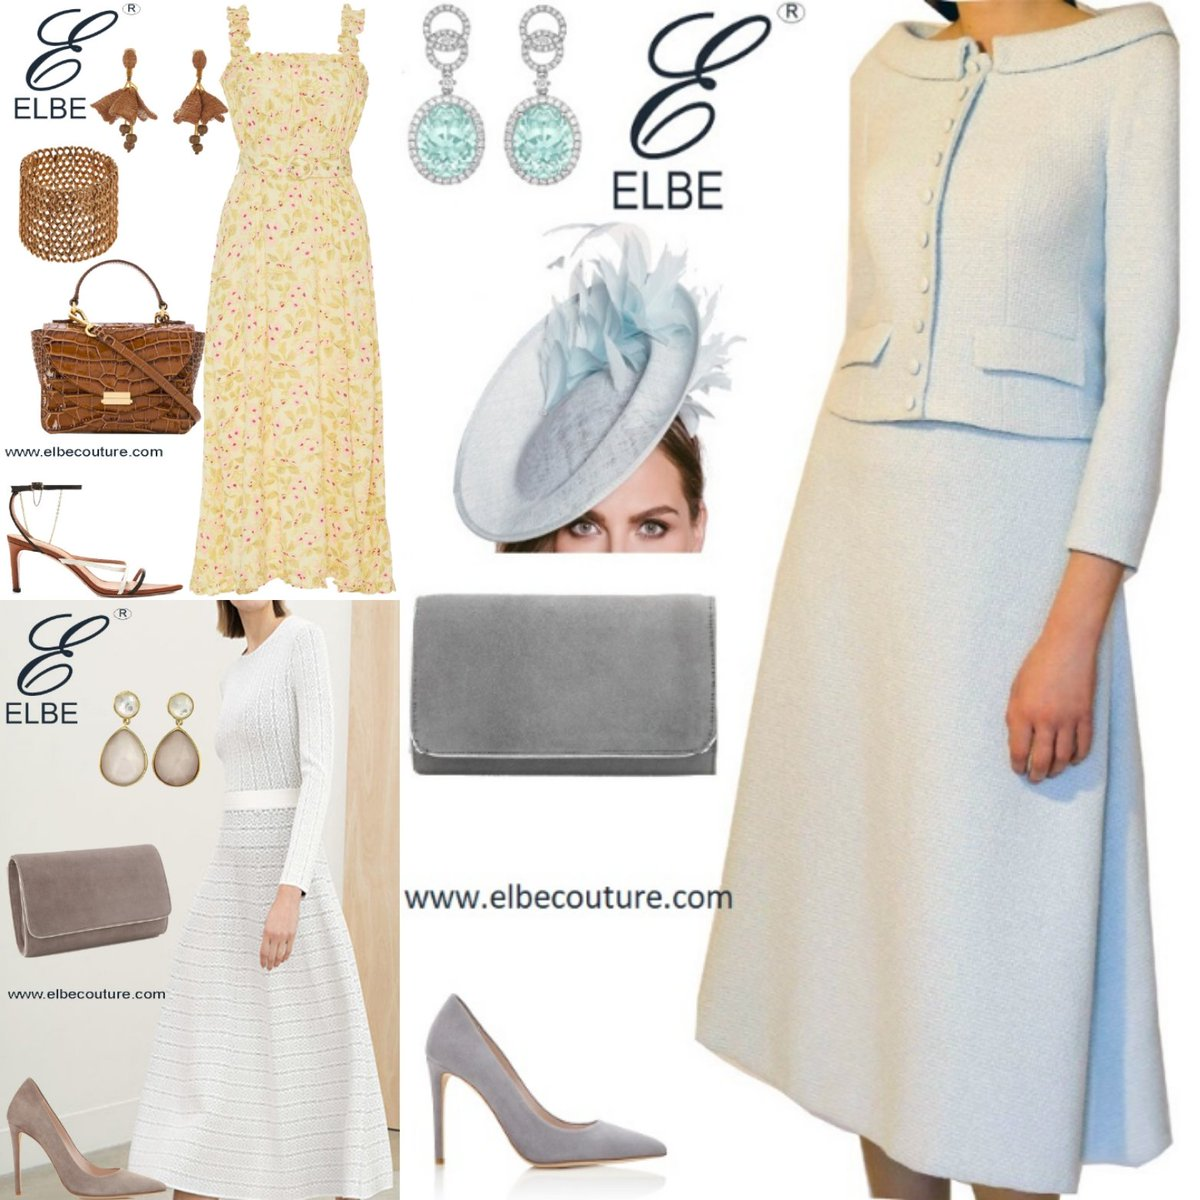 #springsummer2020 collection of #elbecouture has #pastel shades, #elegantstyle #dreamyaesthetic  #timelessbeauty and #feminineenergy . A #lookbook catering all the #women  https://www.elbecouture.com pic.twitter.com/WYKMSHnuiy